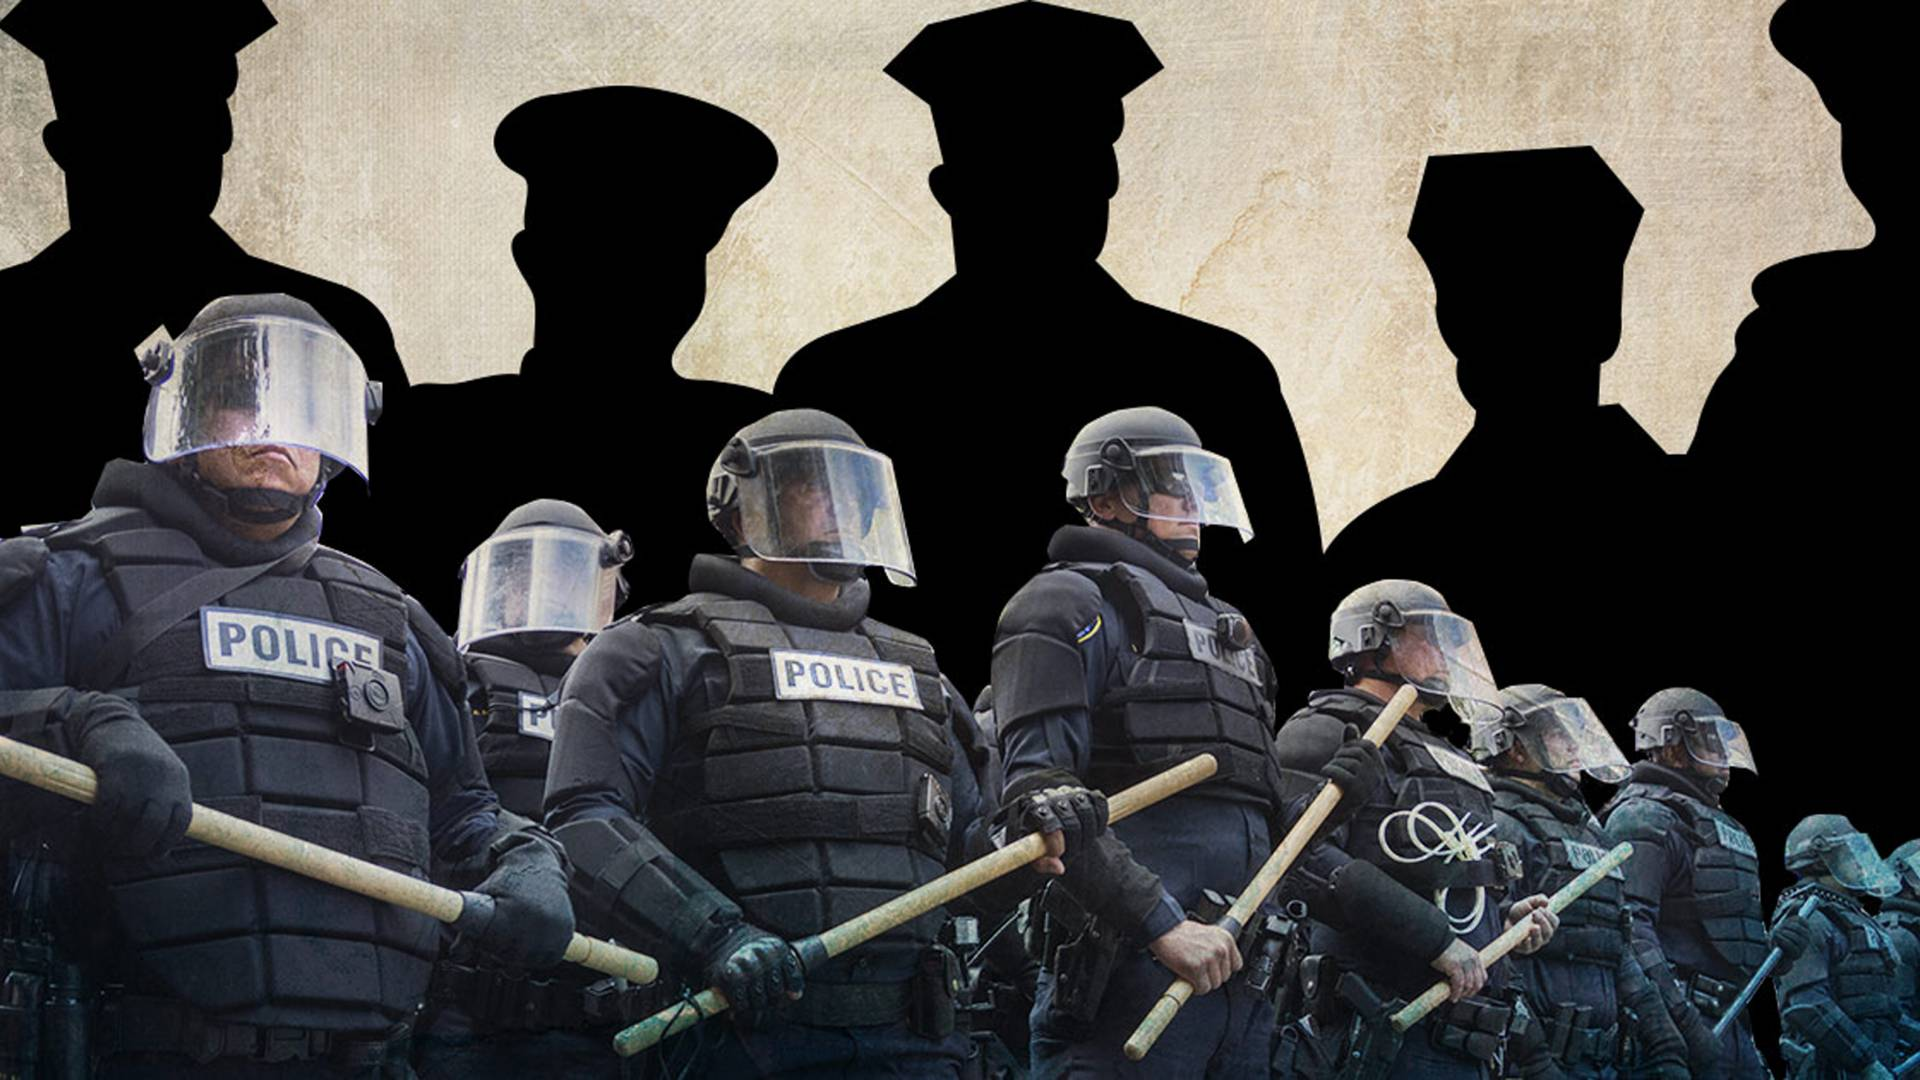 Riot police stand in front of silhouettes in police uniform